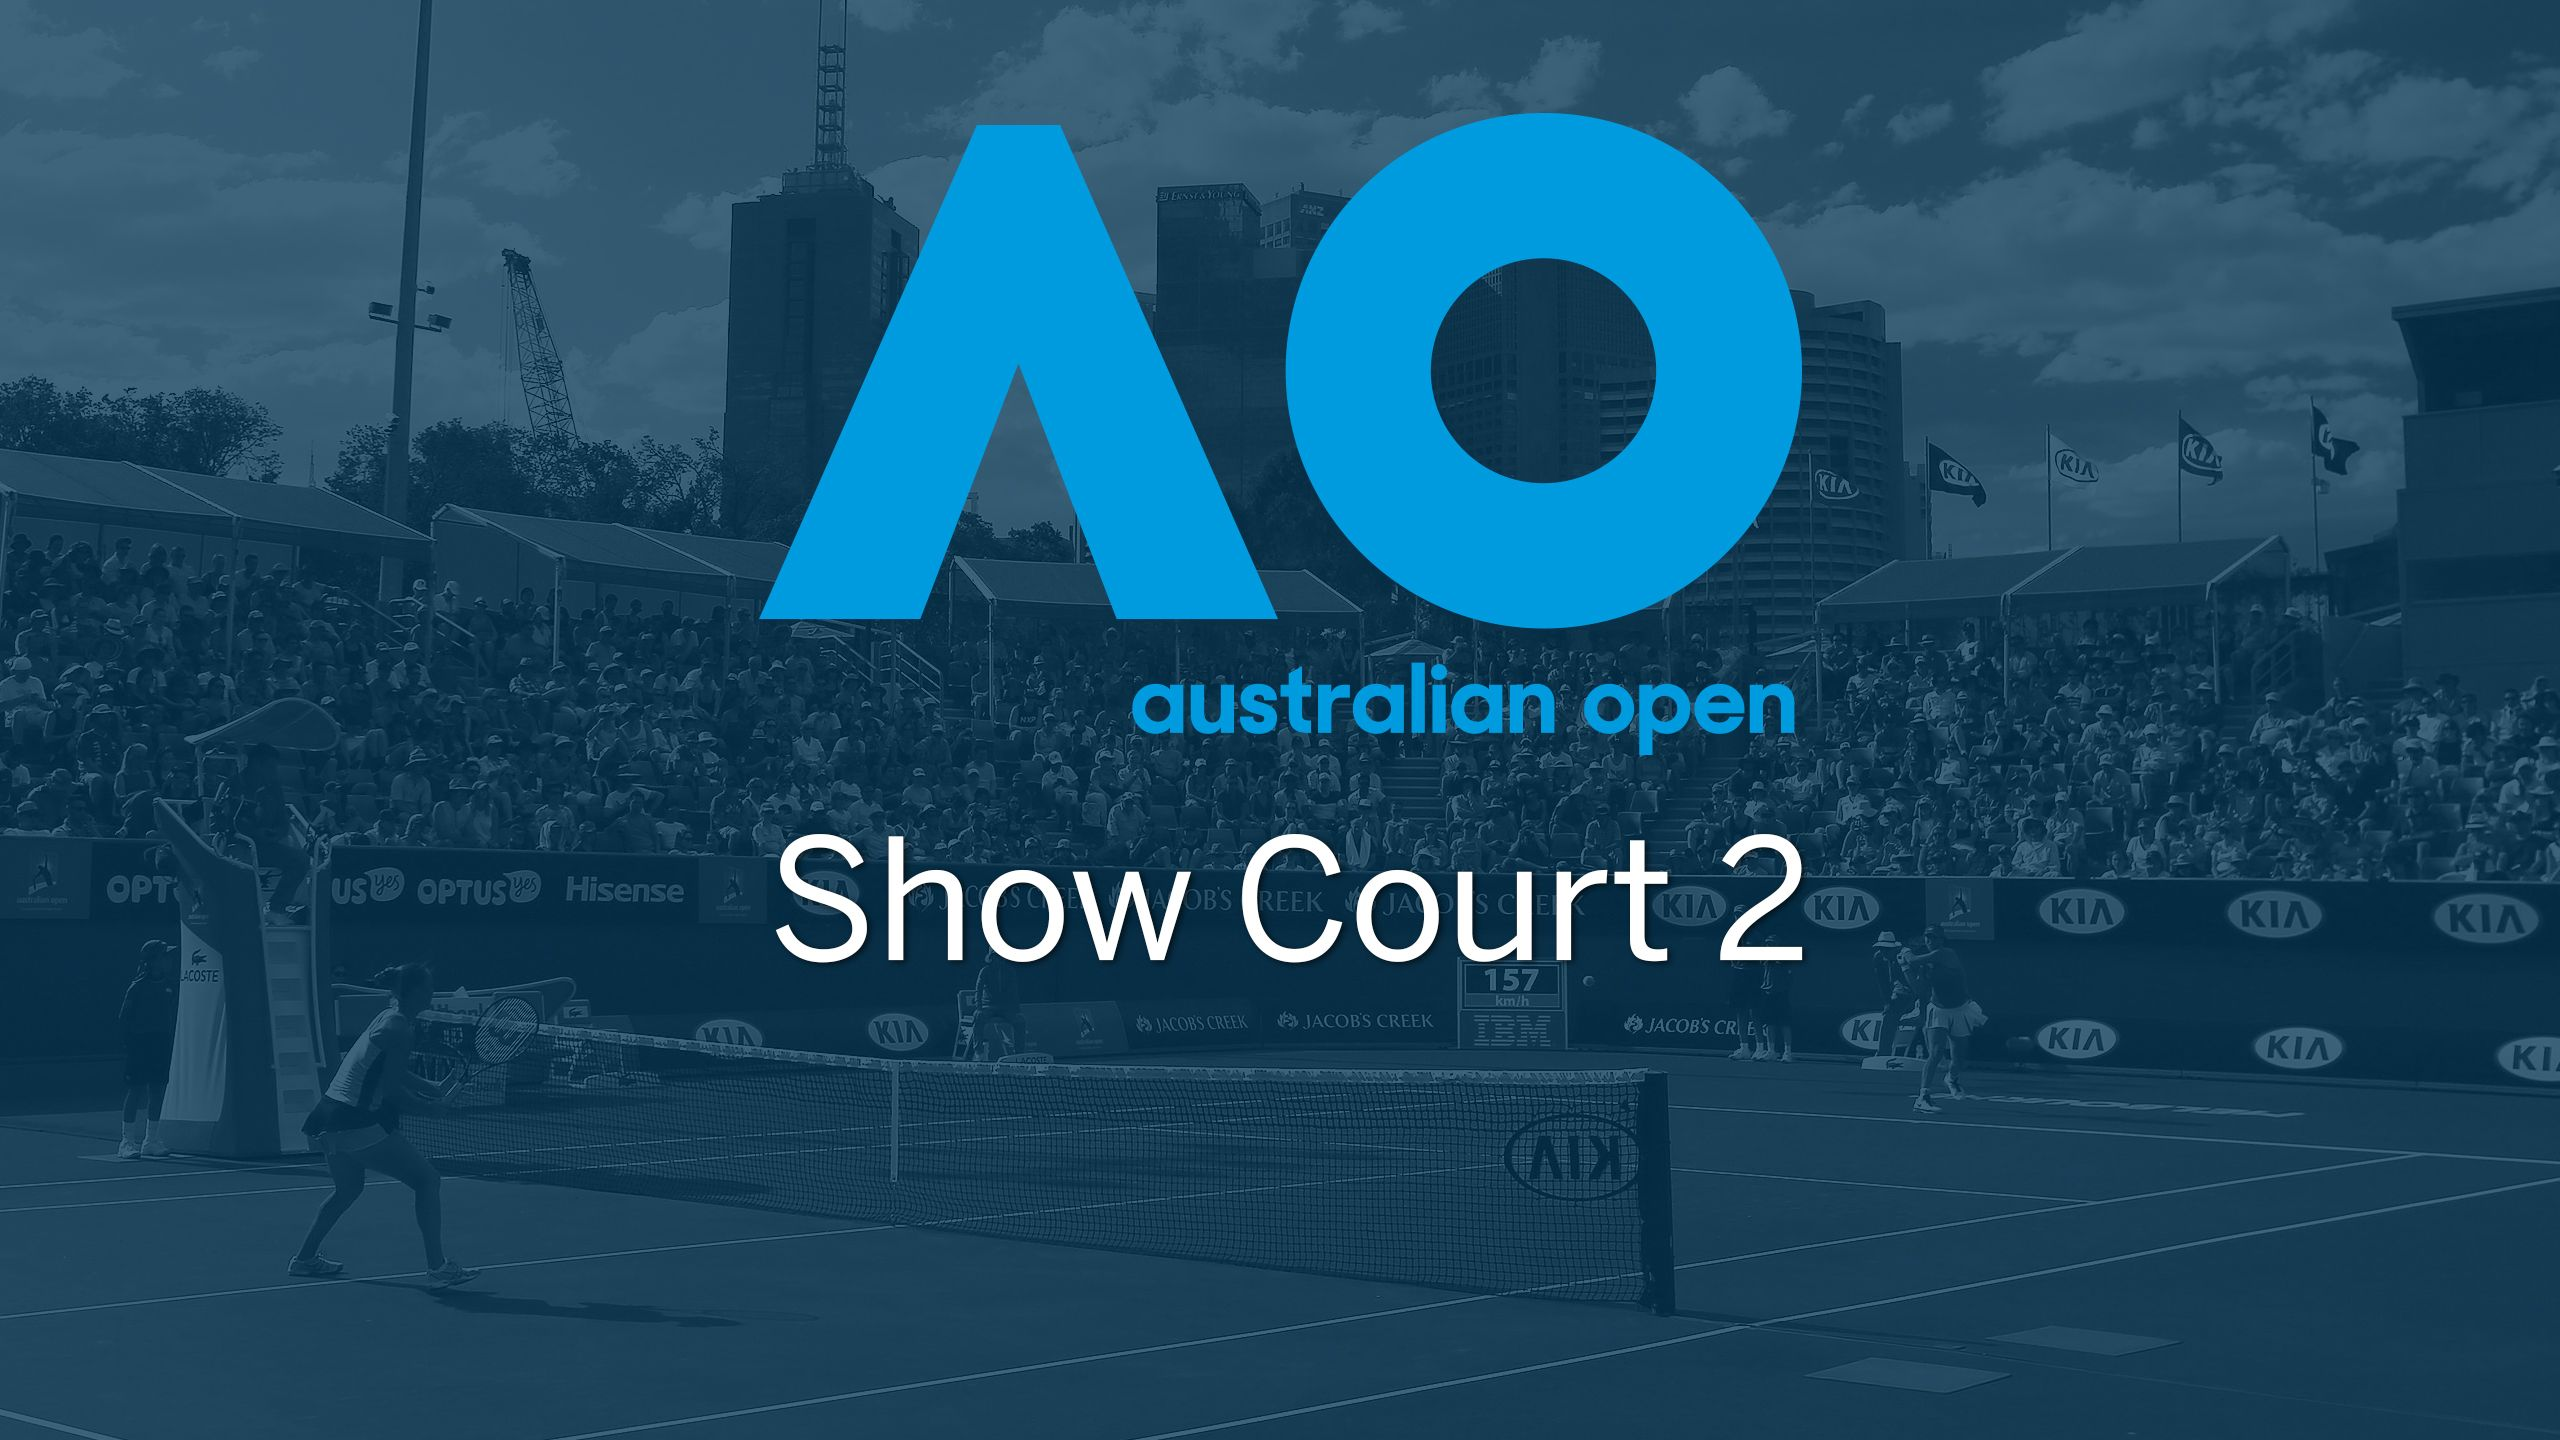 (5) Babos/Bopanna vs. King/Skugor (Mixed Doubles Second Round)